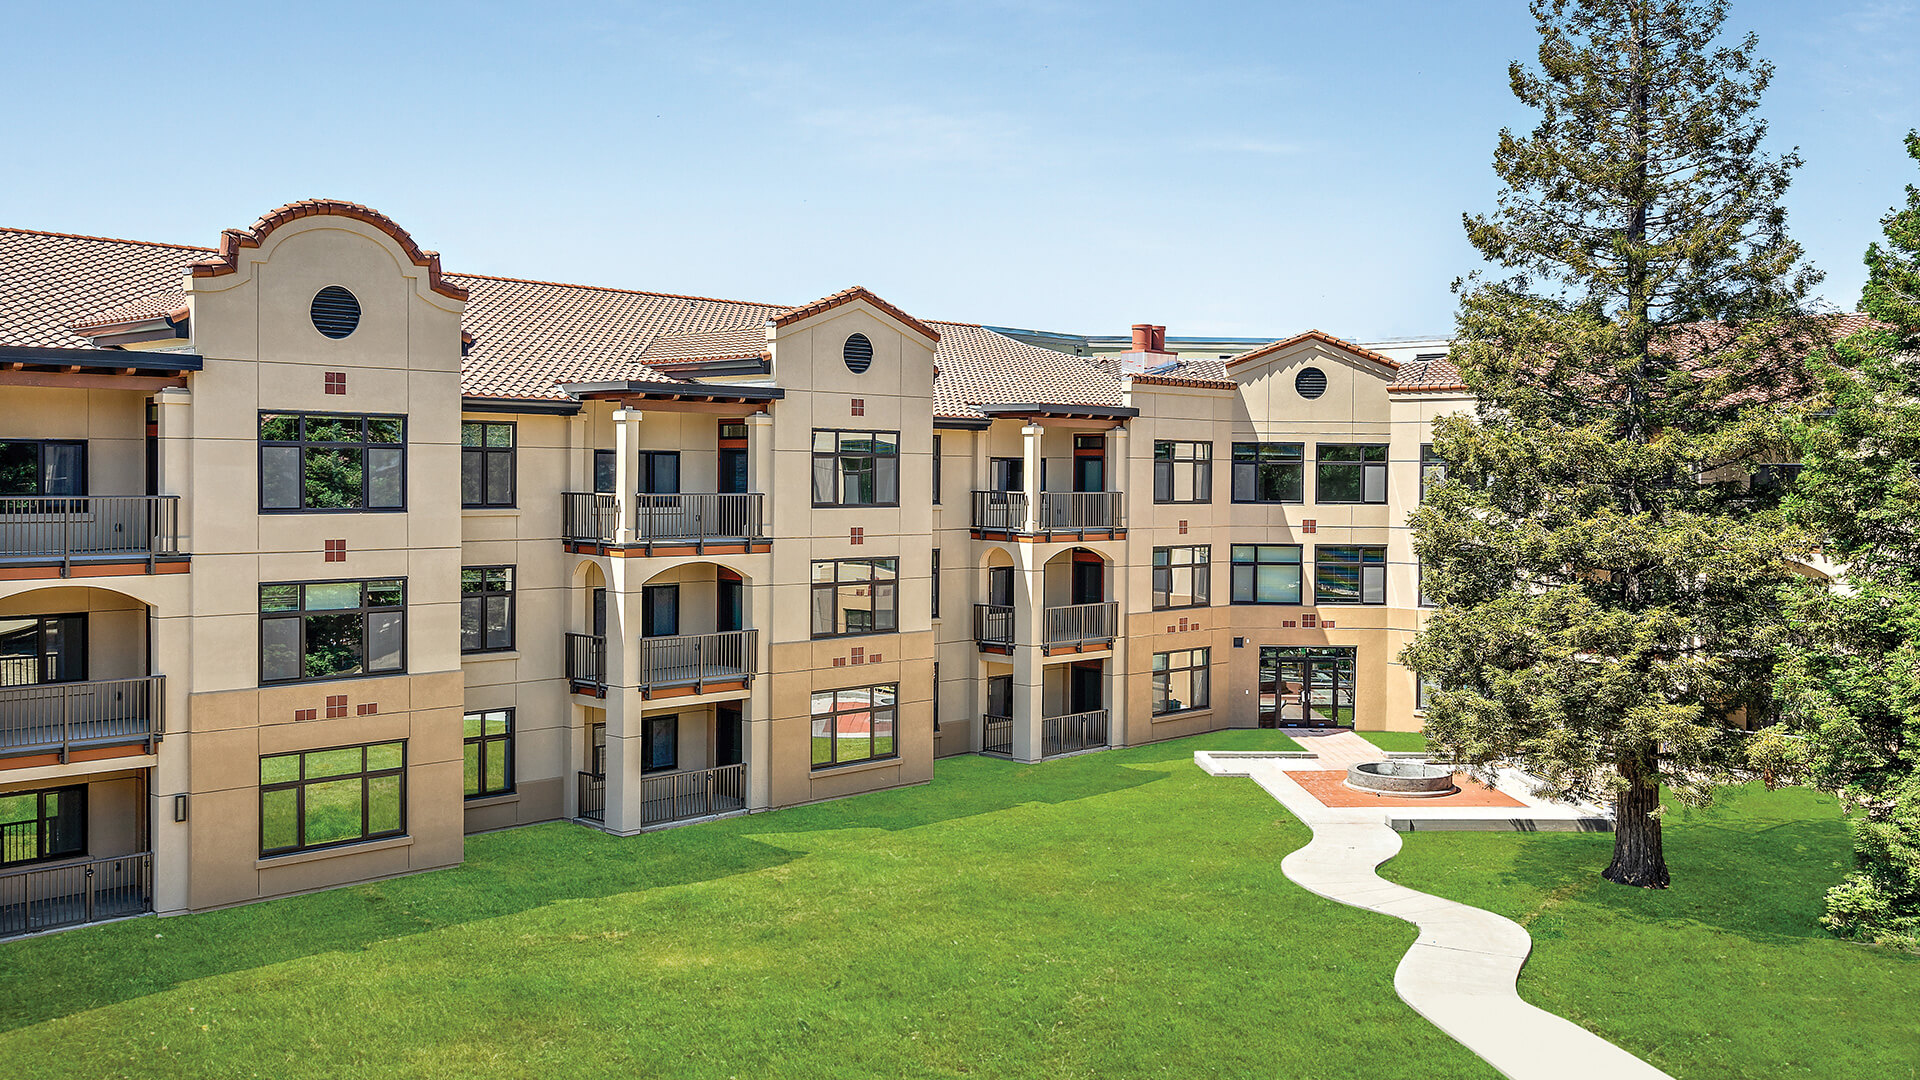 Meadows of Napa Valley Retirement Community